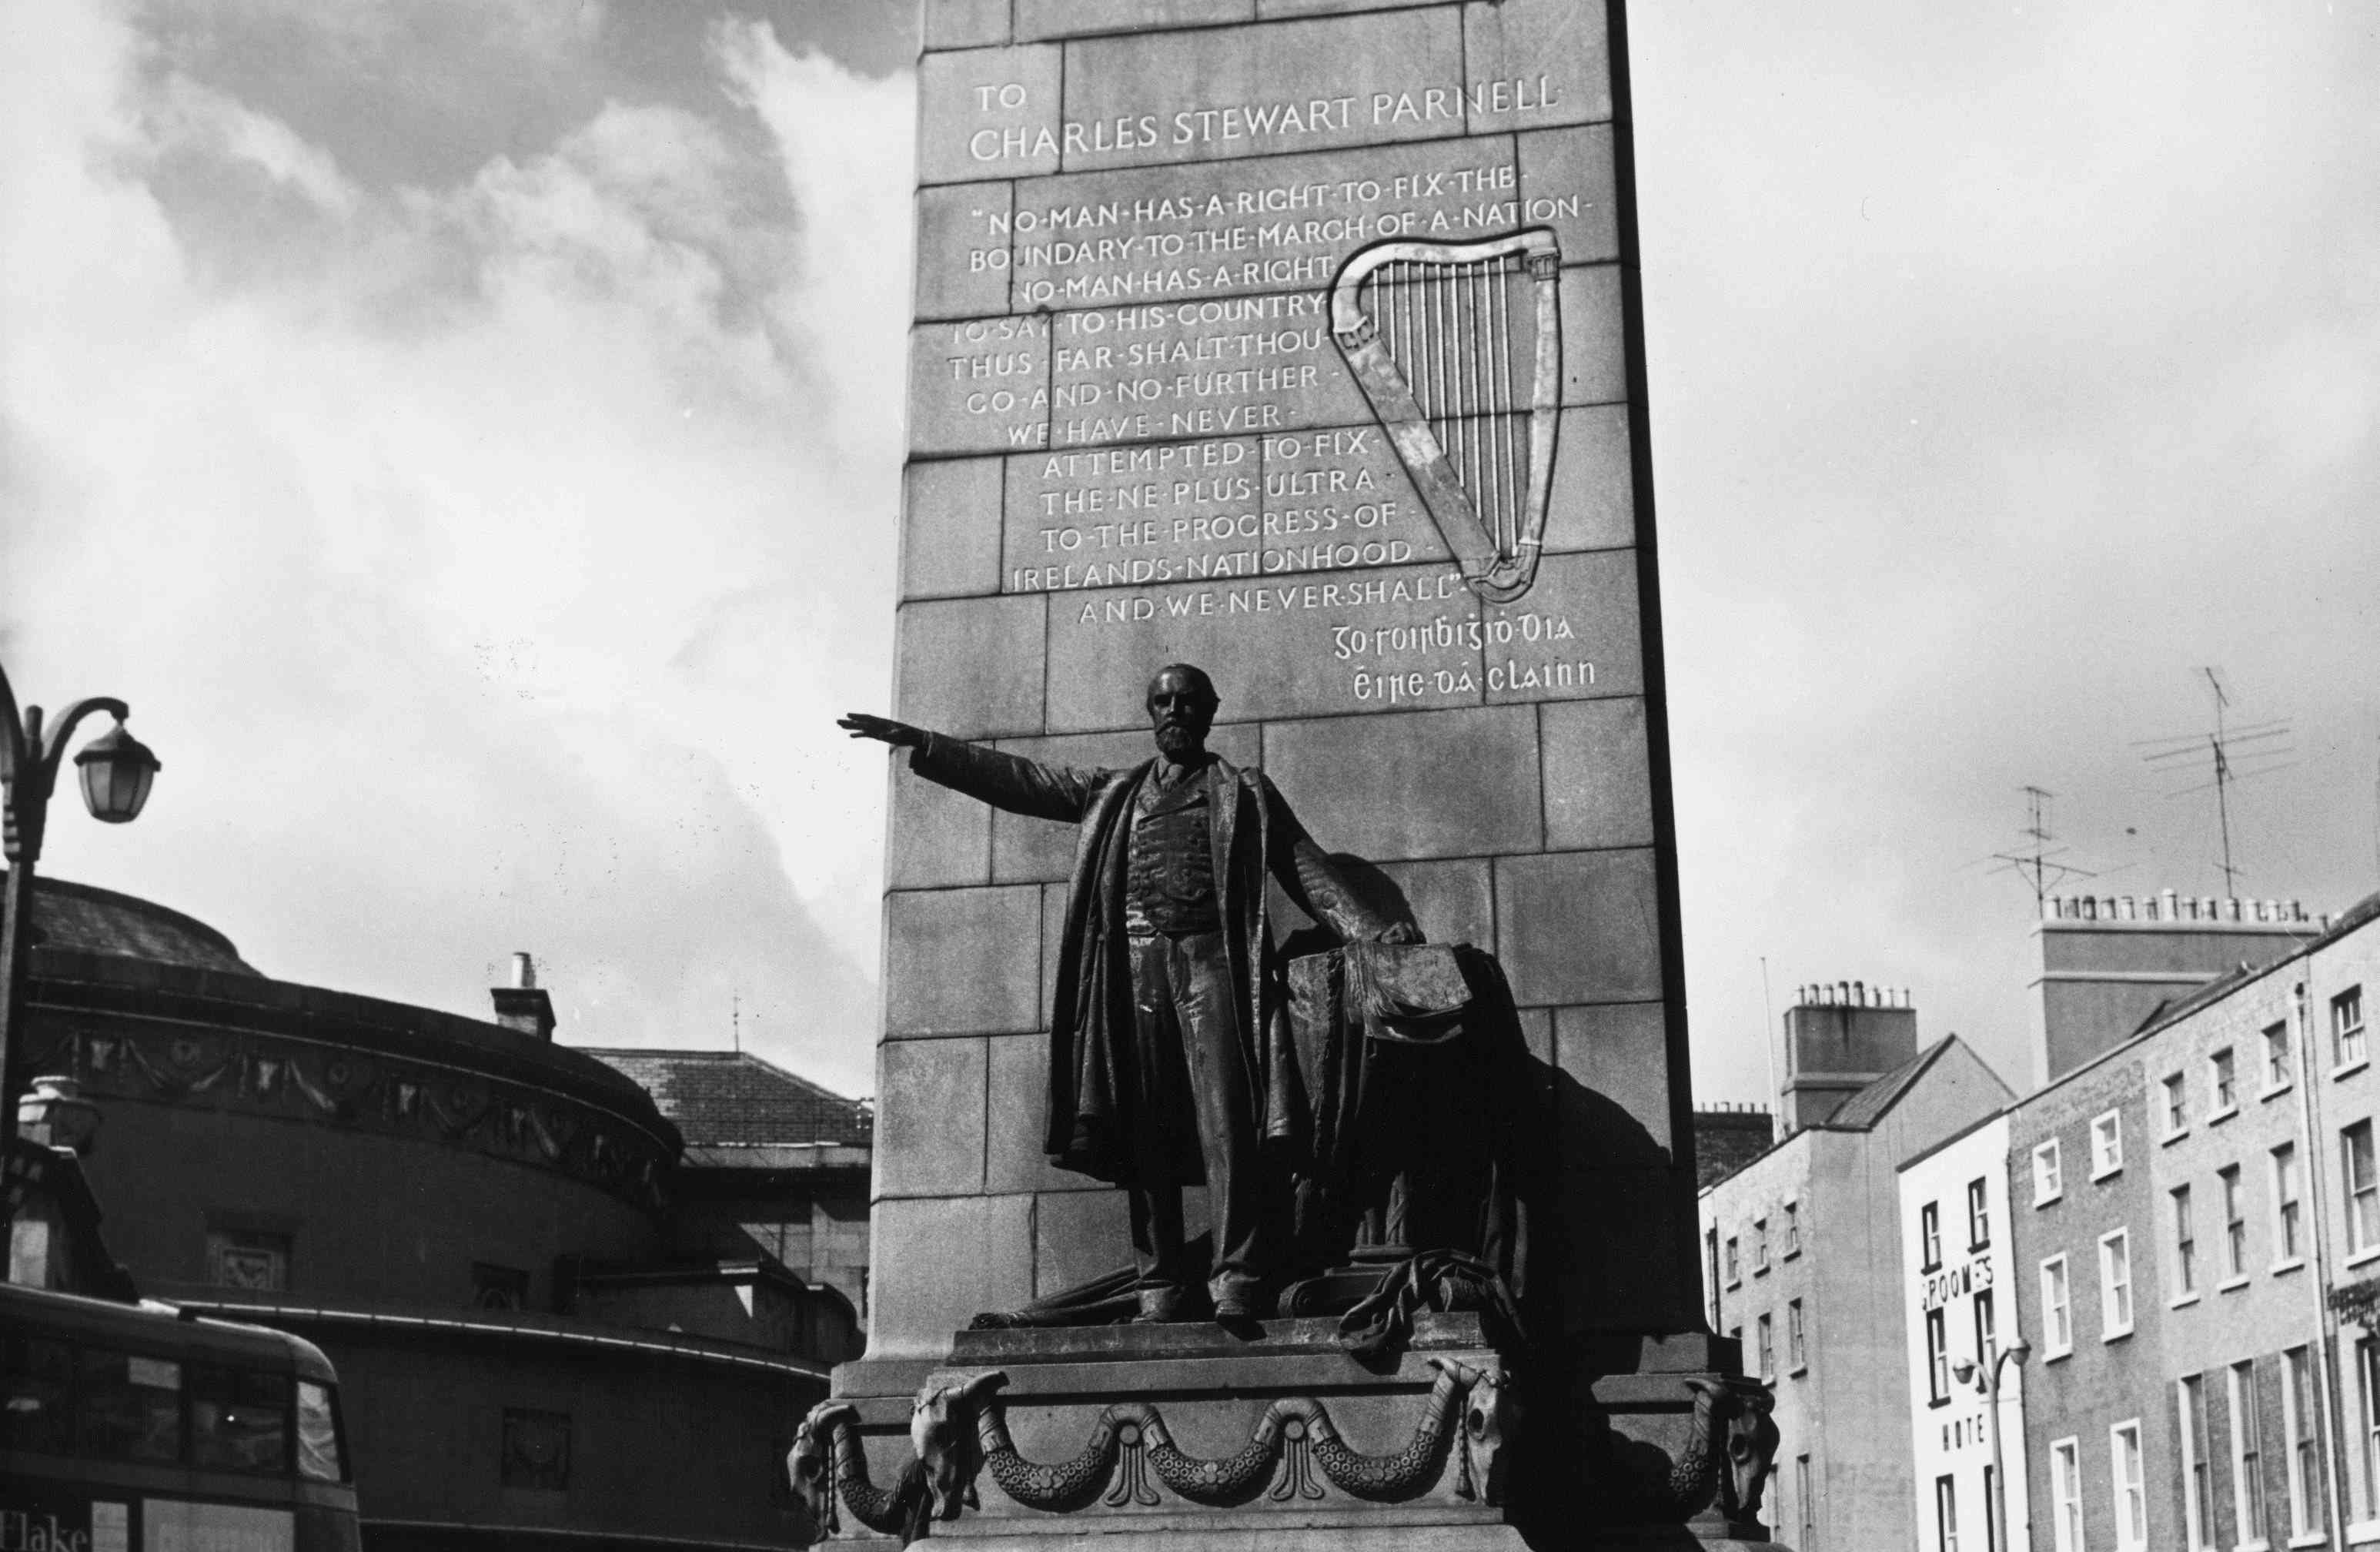 photo of statue of Charles Stewart Parnell in Dublin